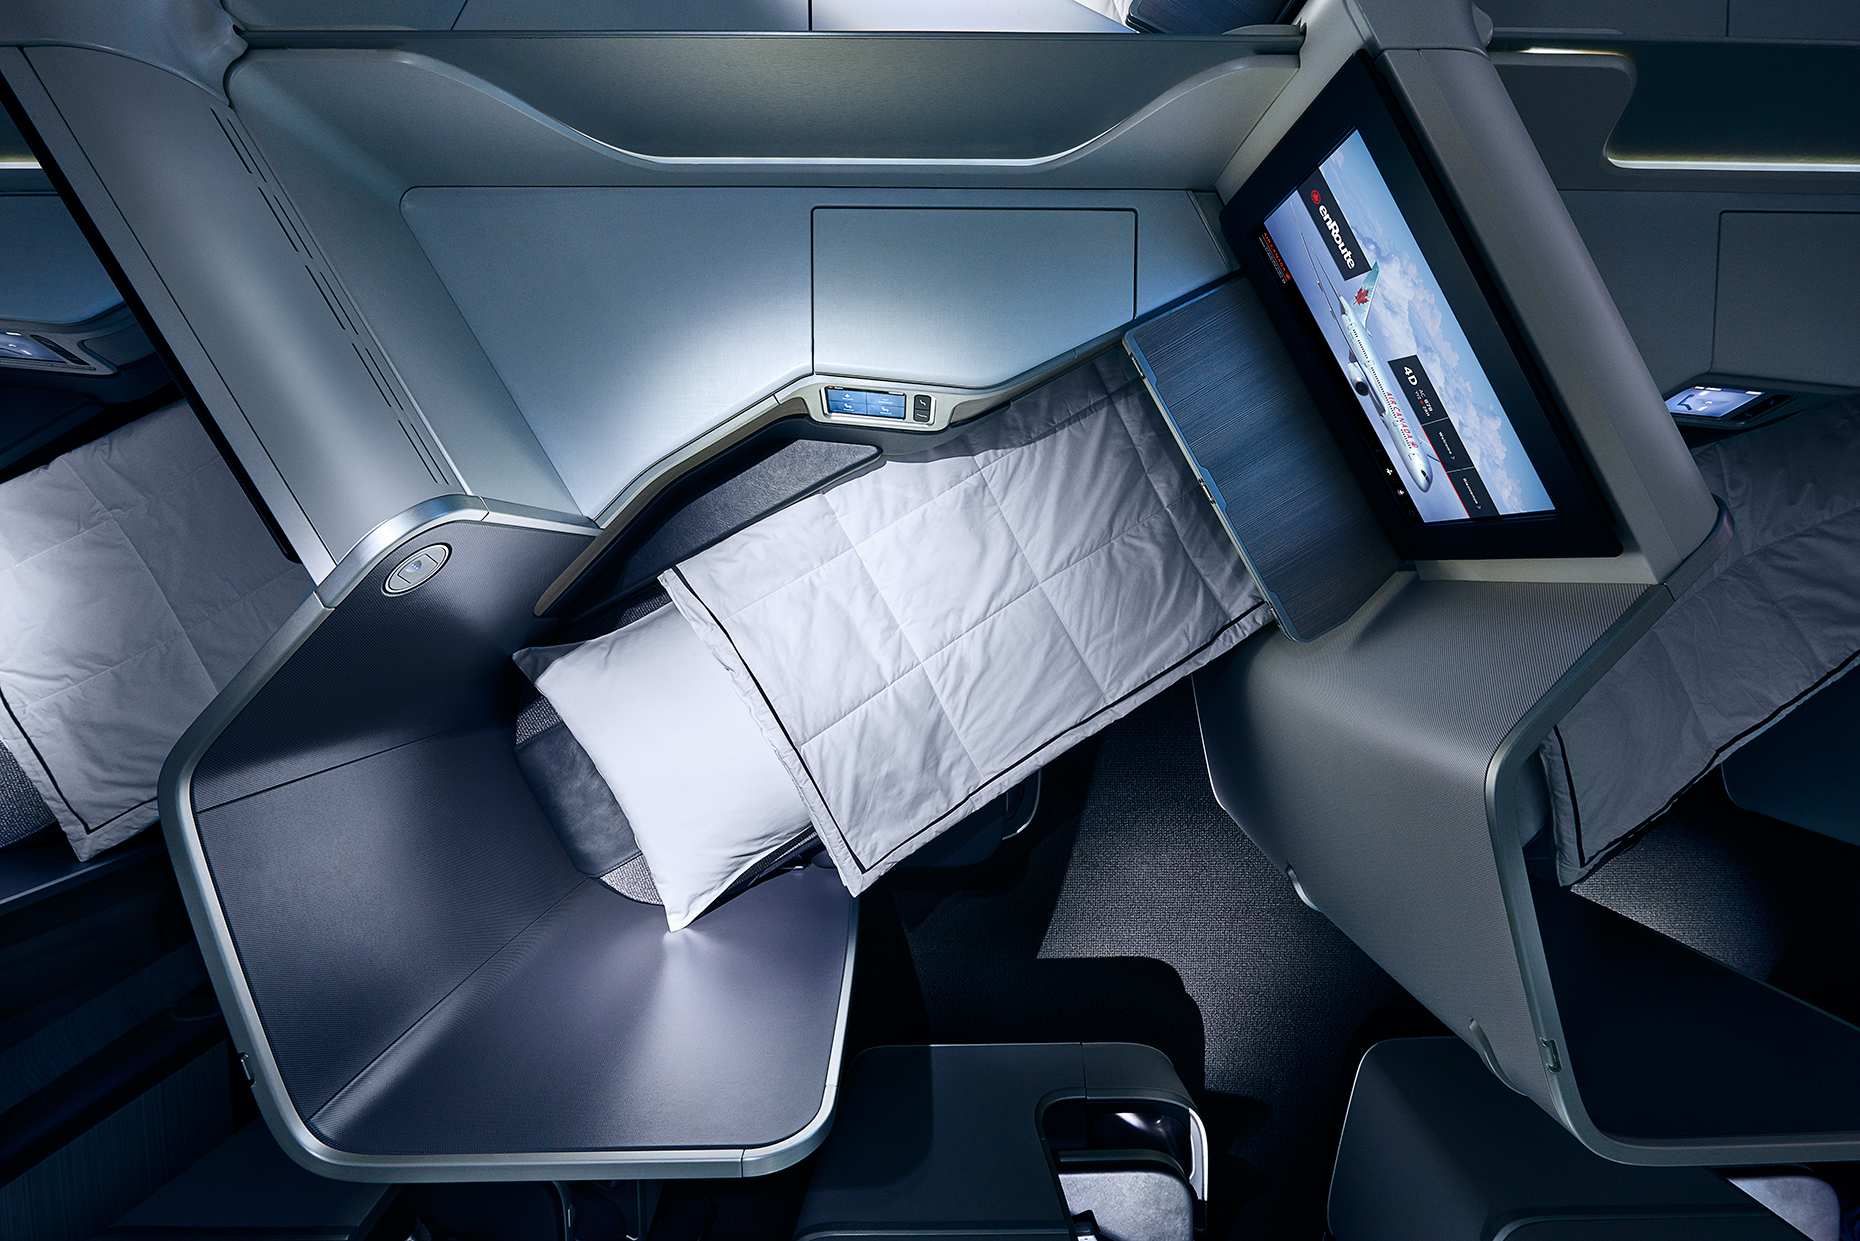 Air Canada Dreamliner - J-Class Sleeping Pod